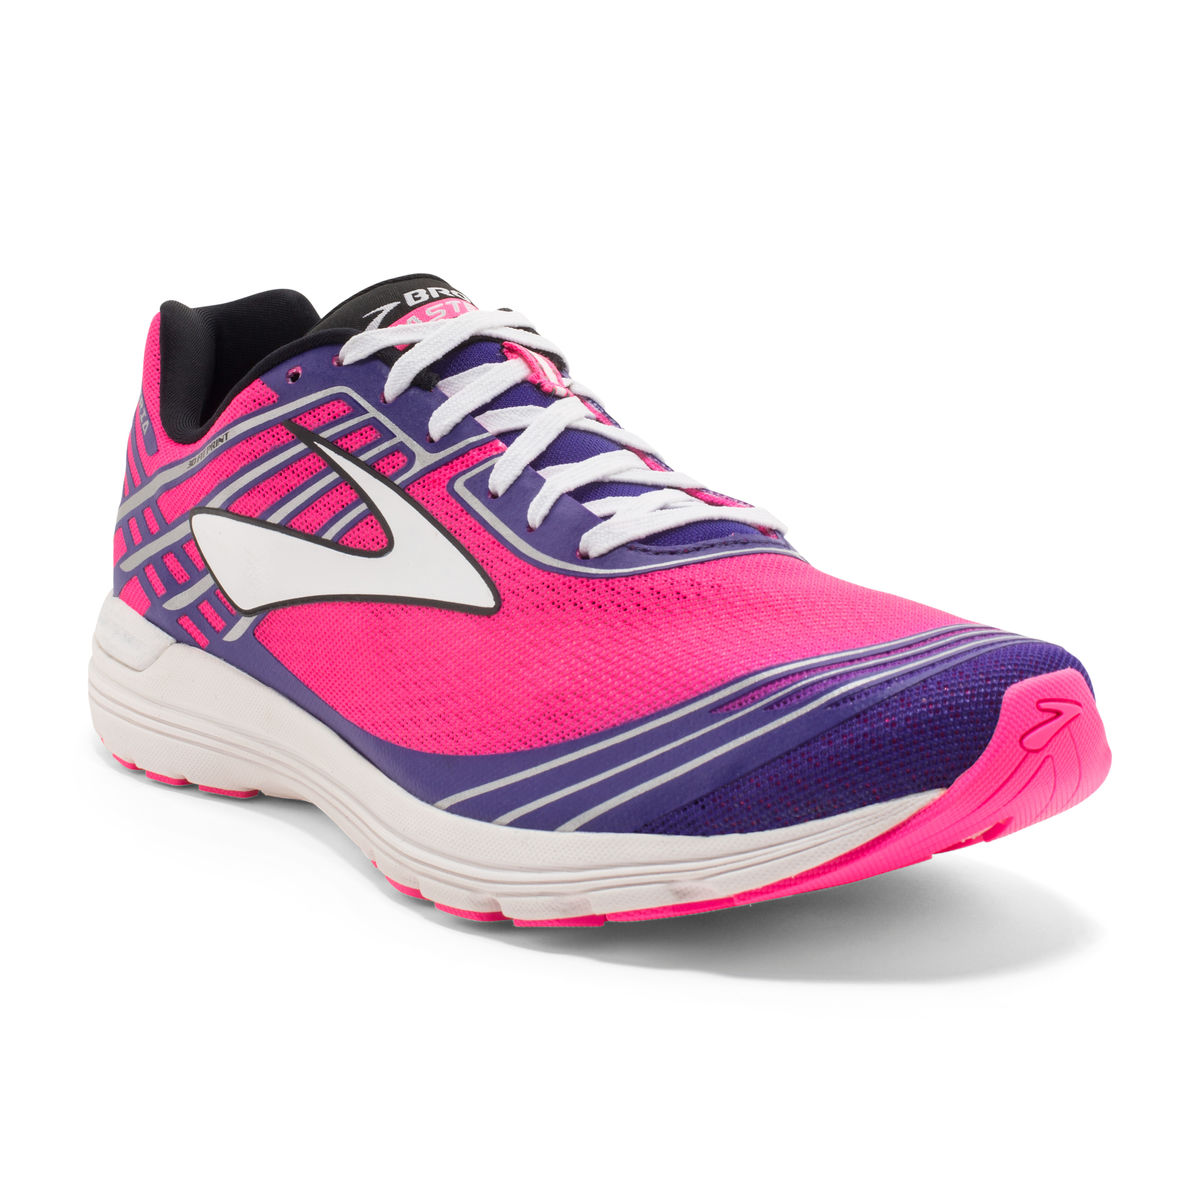 SCARPA RUNNING BROOKS ASTERIA WOMEN 650.jpg